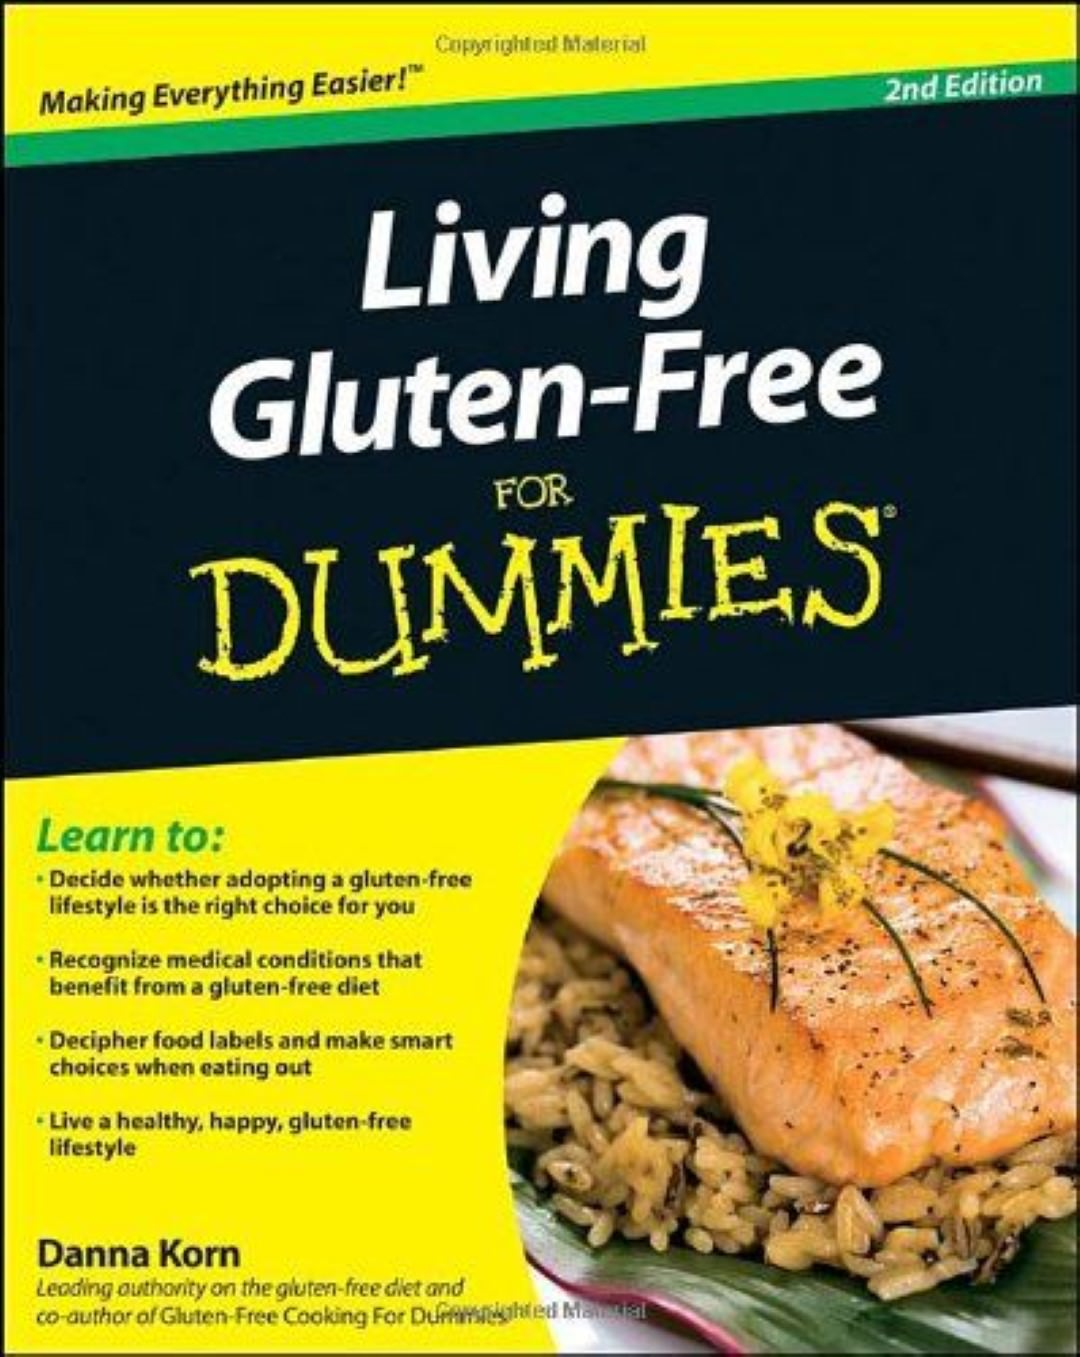 You can never go wrong with Living Gluten-Free for Dummies by Danna Korn.  This book makes gluten-free living simple and easy. There are not any  complicated ...